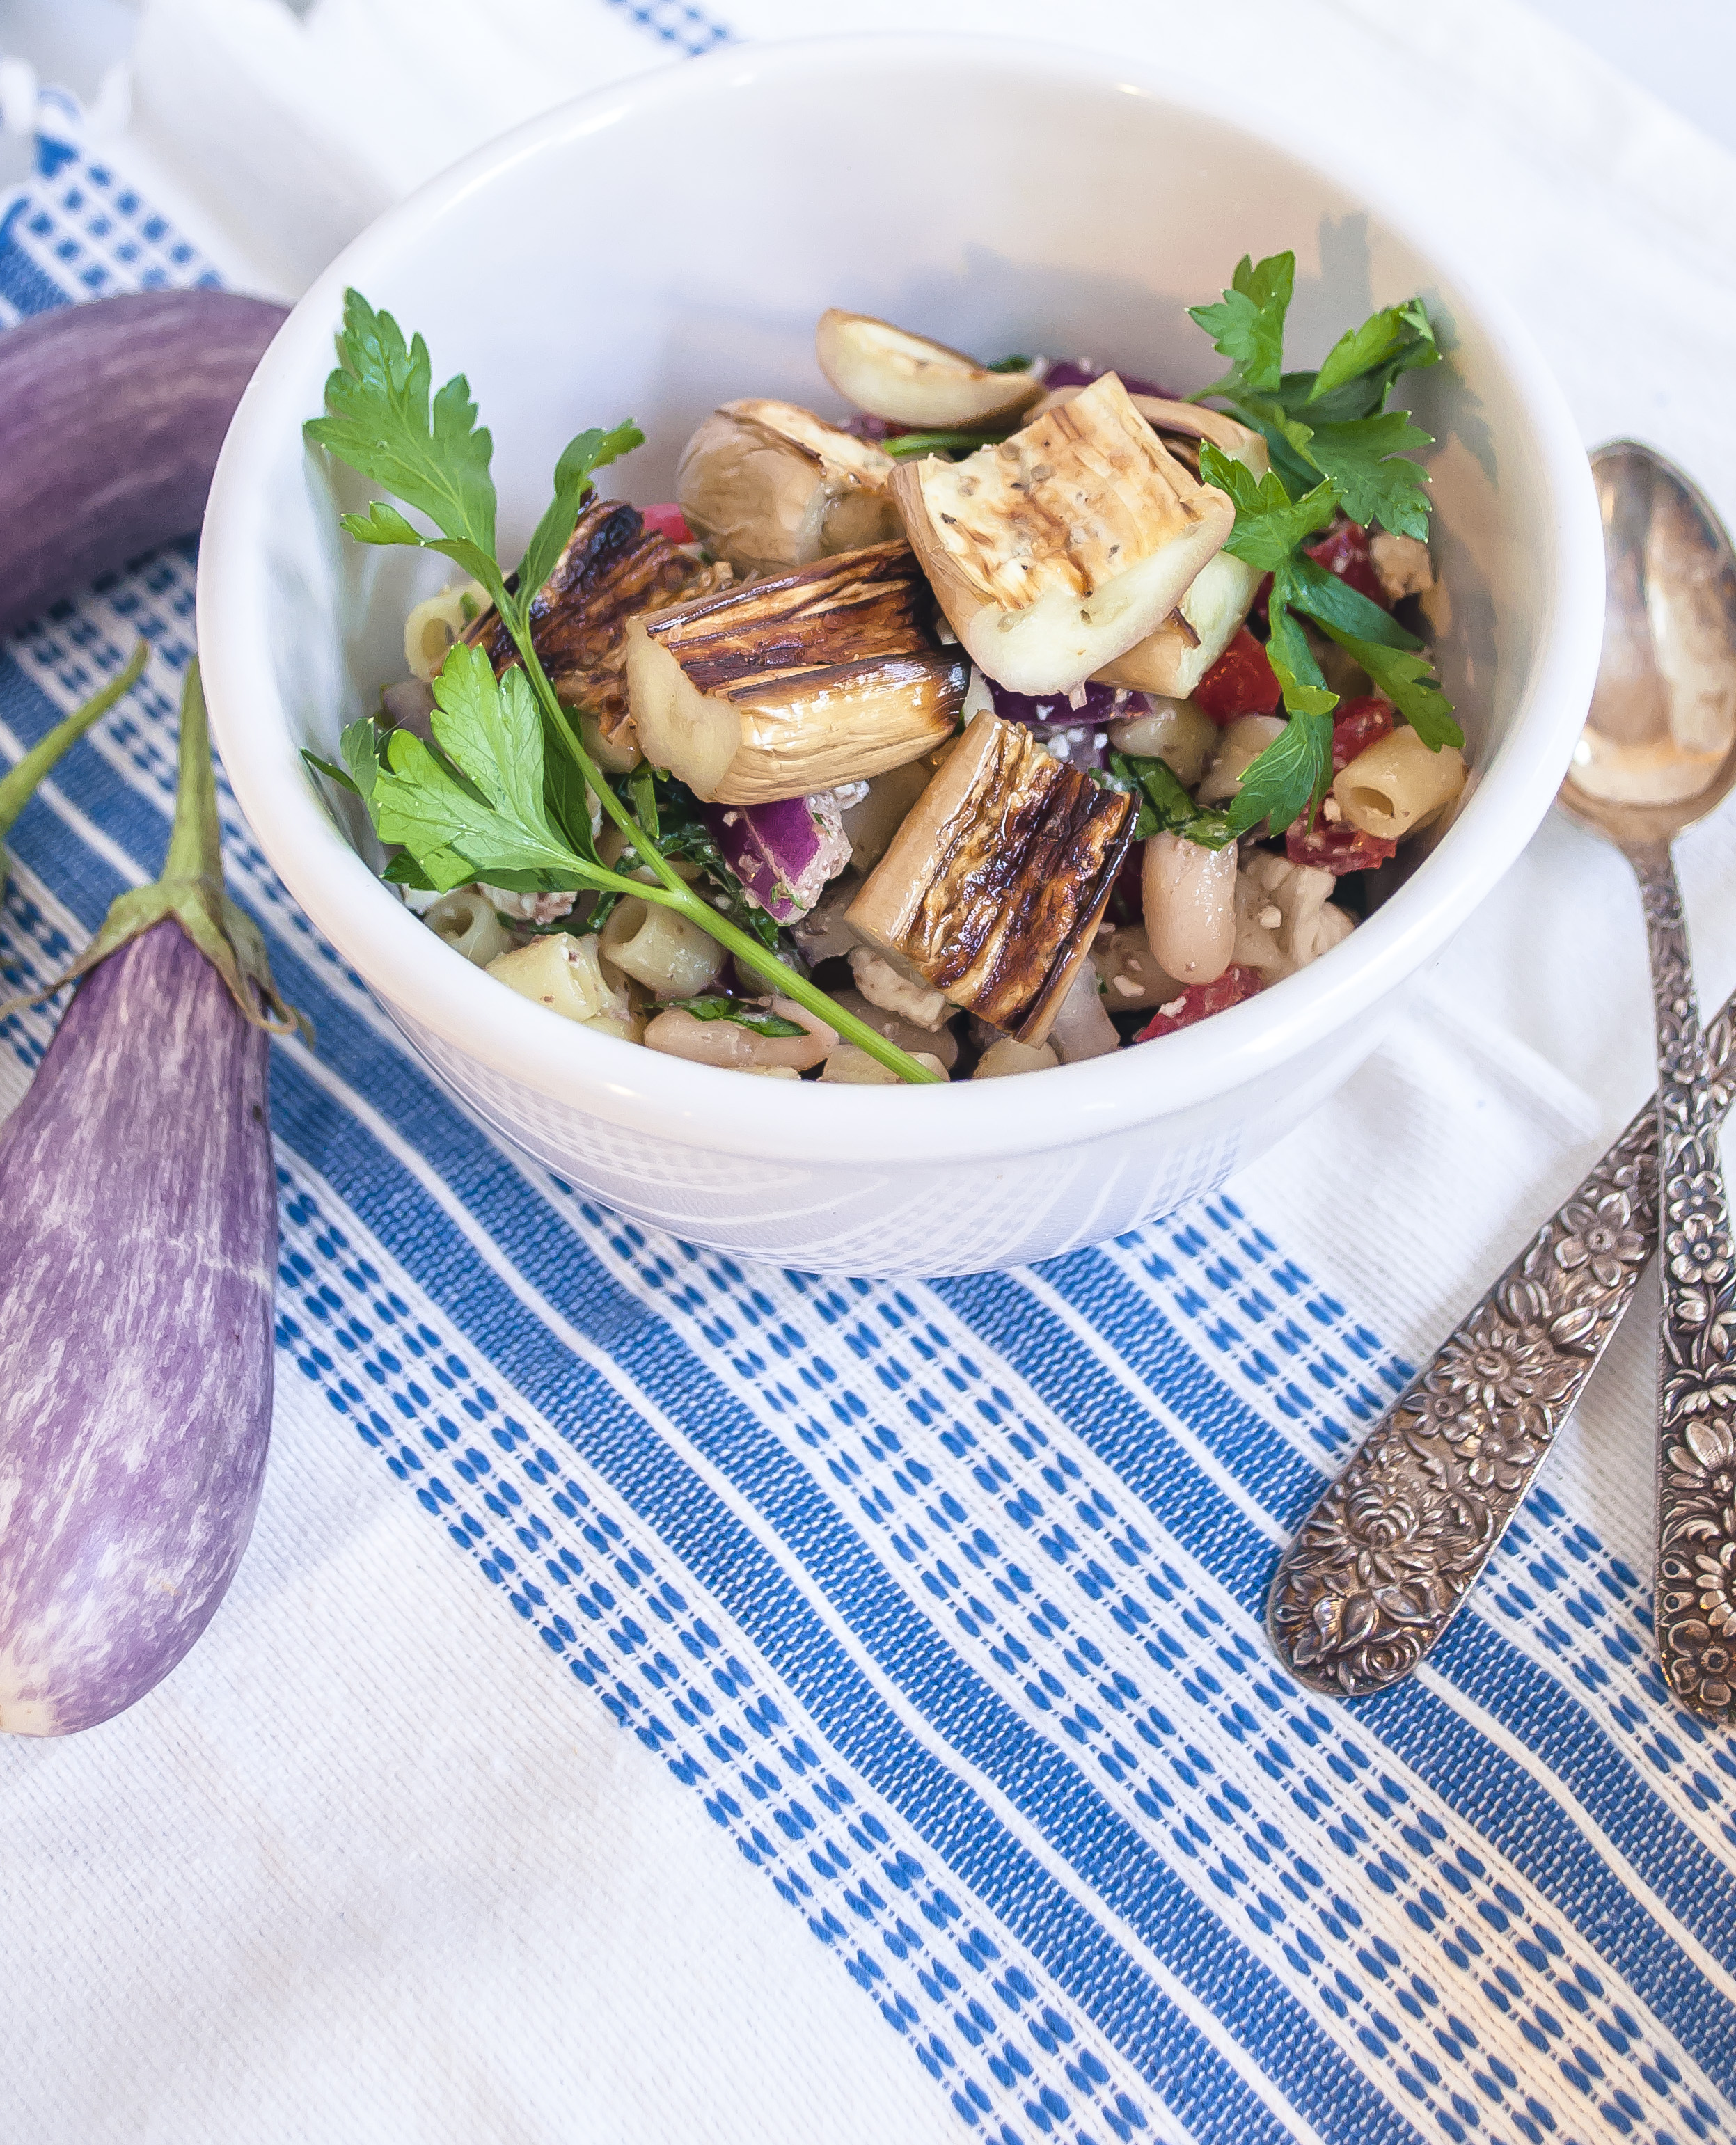 Greek Pasta Salad with Broiled Mini Eggplants